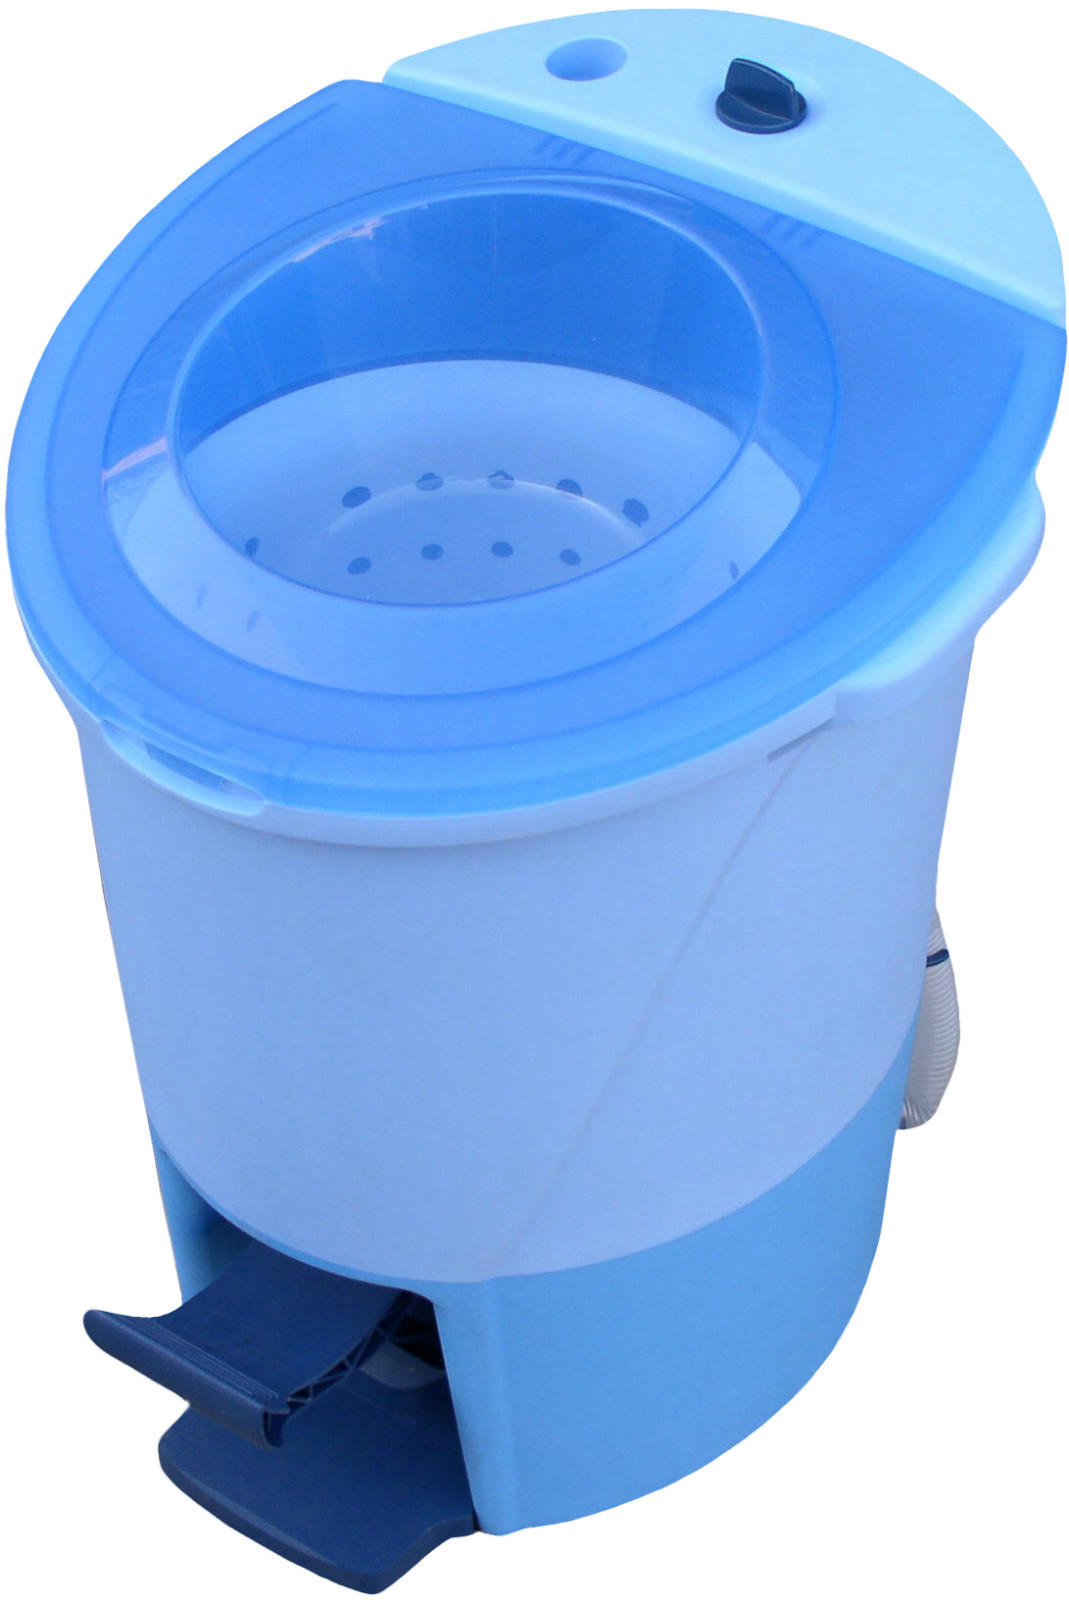 pedal powered washing machine and spin dryer